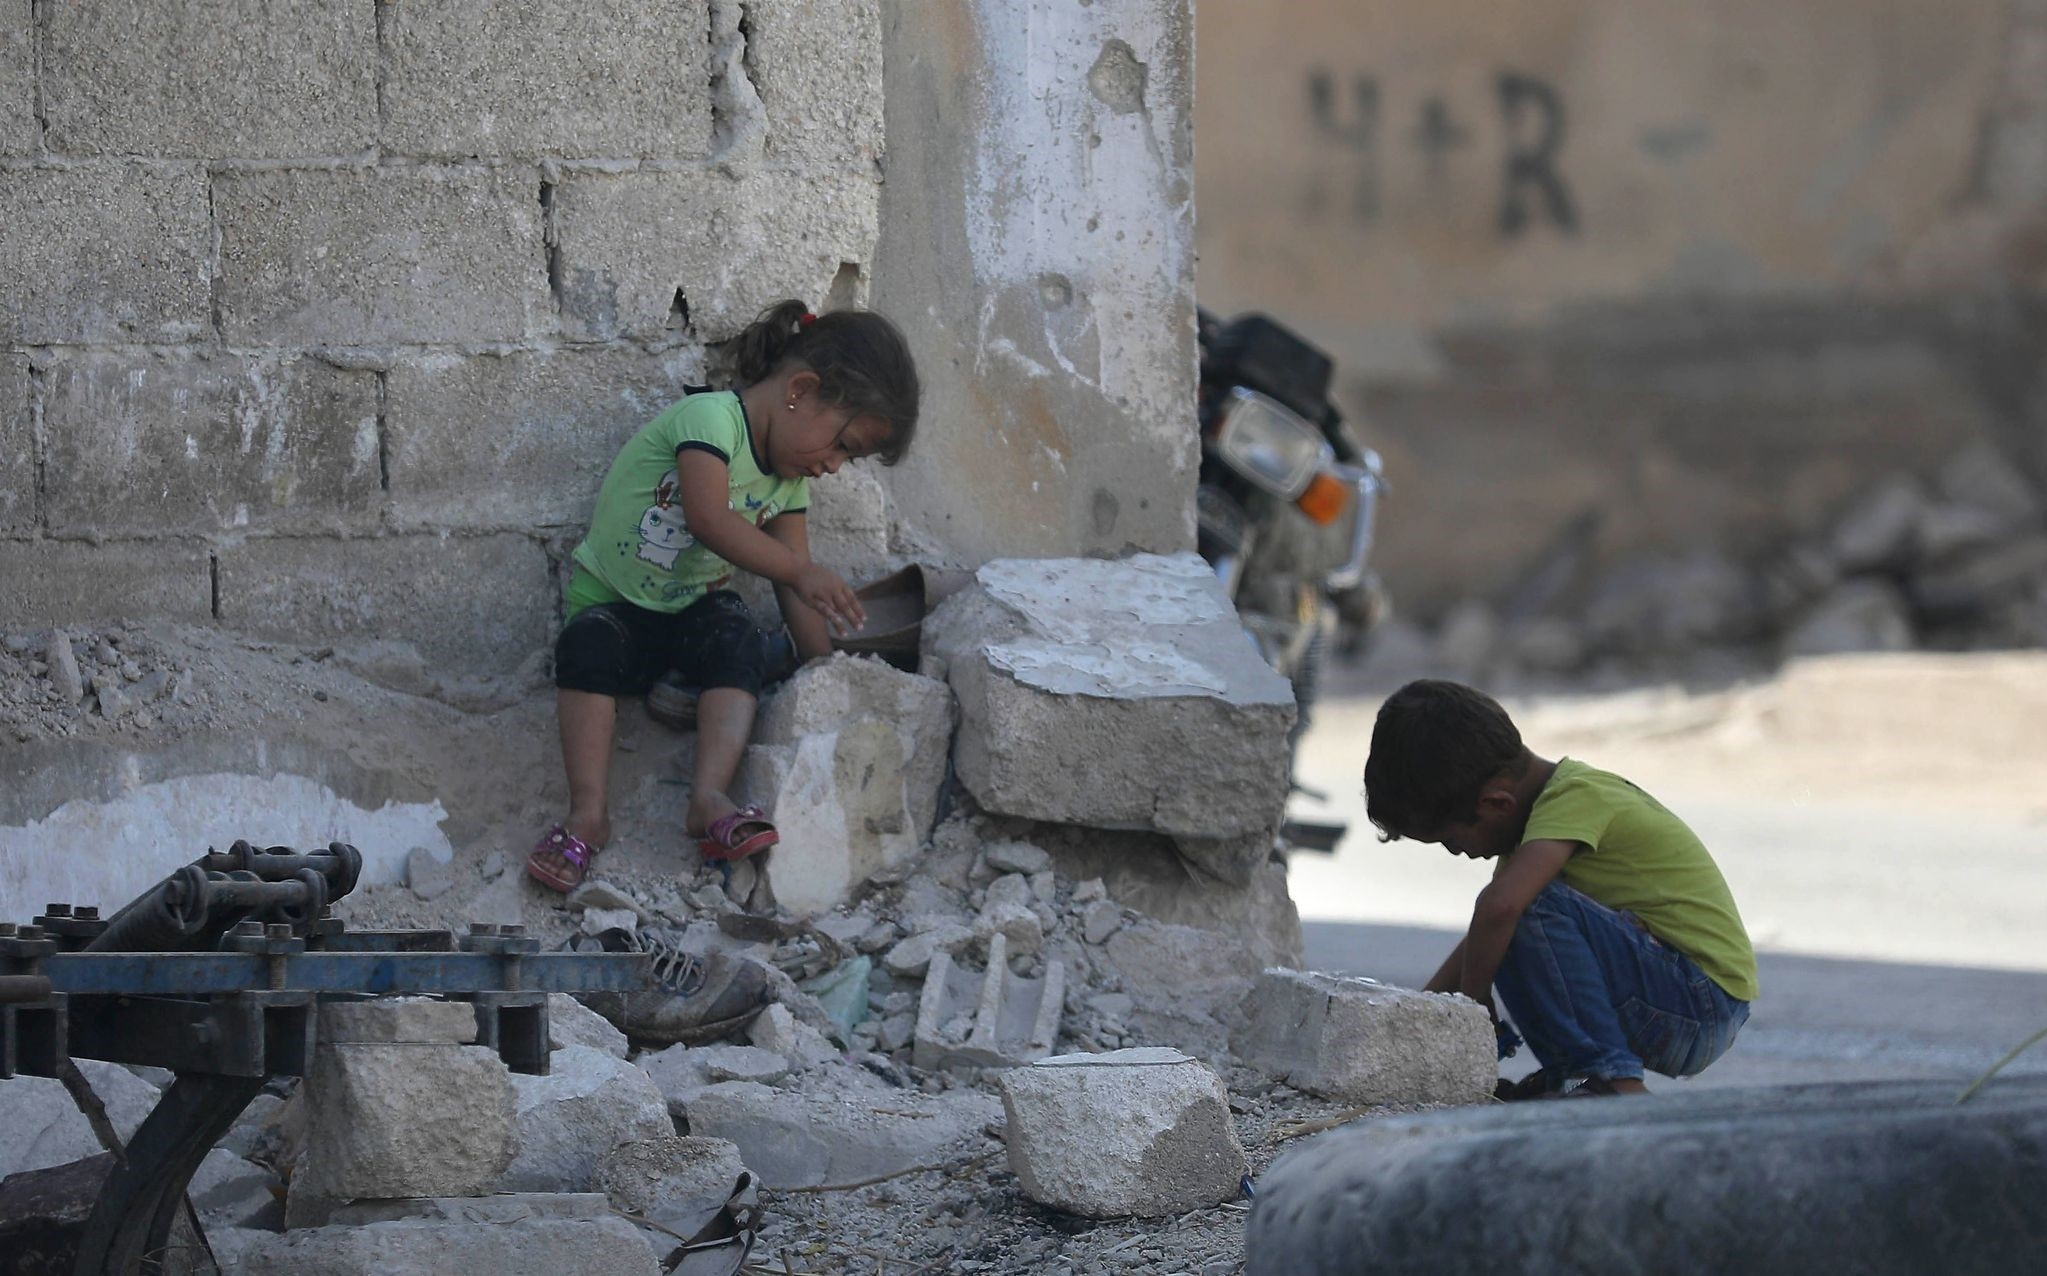 Syrian children play in Morek, a town in the northern countryside neighboring Idlib, where Turkey and Russia recently reached an agreement to establish a demilitarized zone to stop the escalating crisis in the province, Sept. 18.